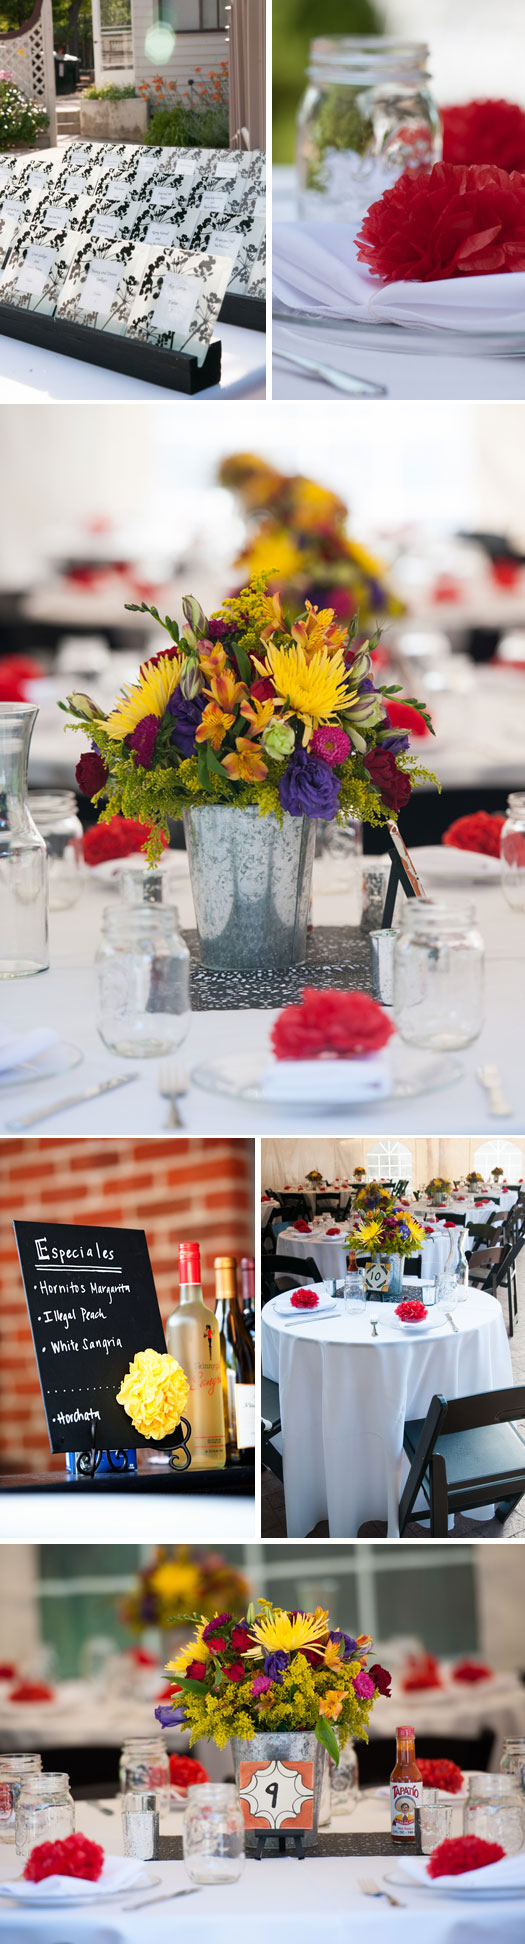 Koenig Alumni Center | Rochelle Mort Photography